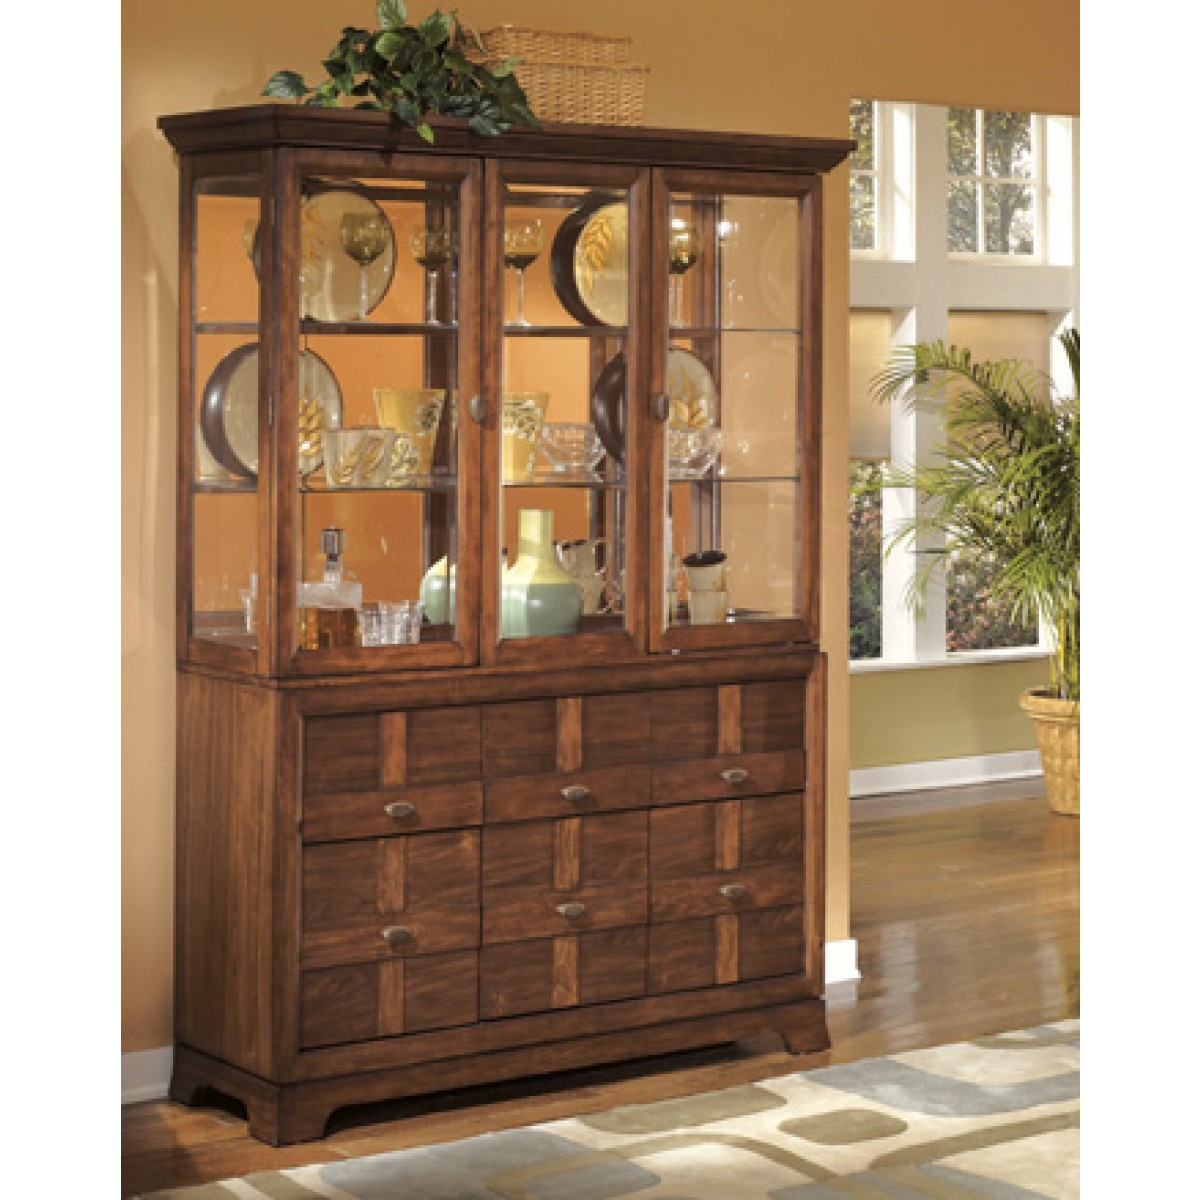 baker racks ashley furniture teenage bedroom narrow bakers rack ashton drake porcelain dolls queen accent tables wooden hutch corner table for dining room full size rope console